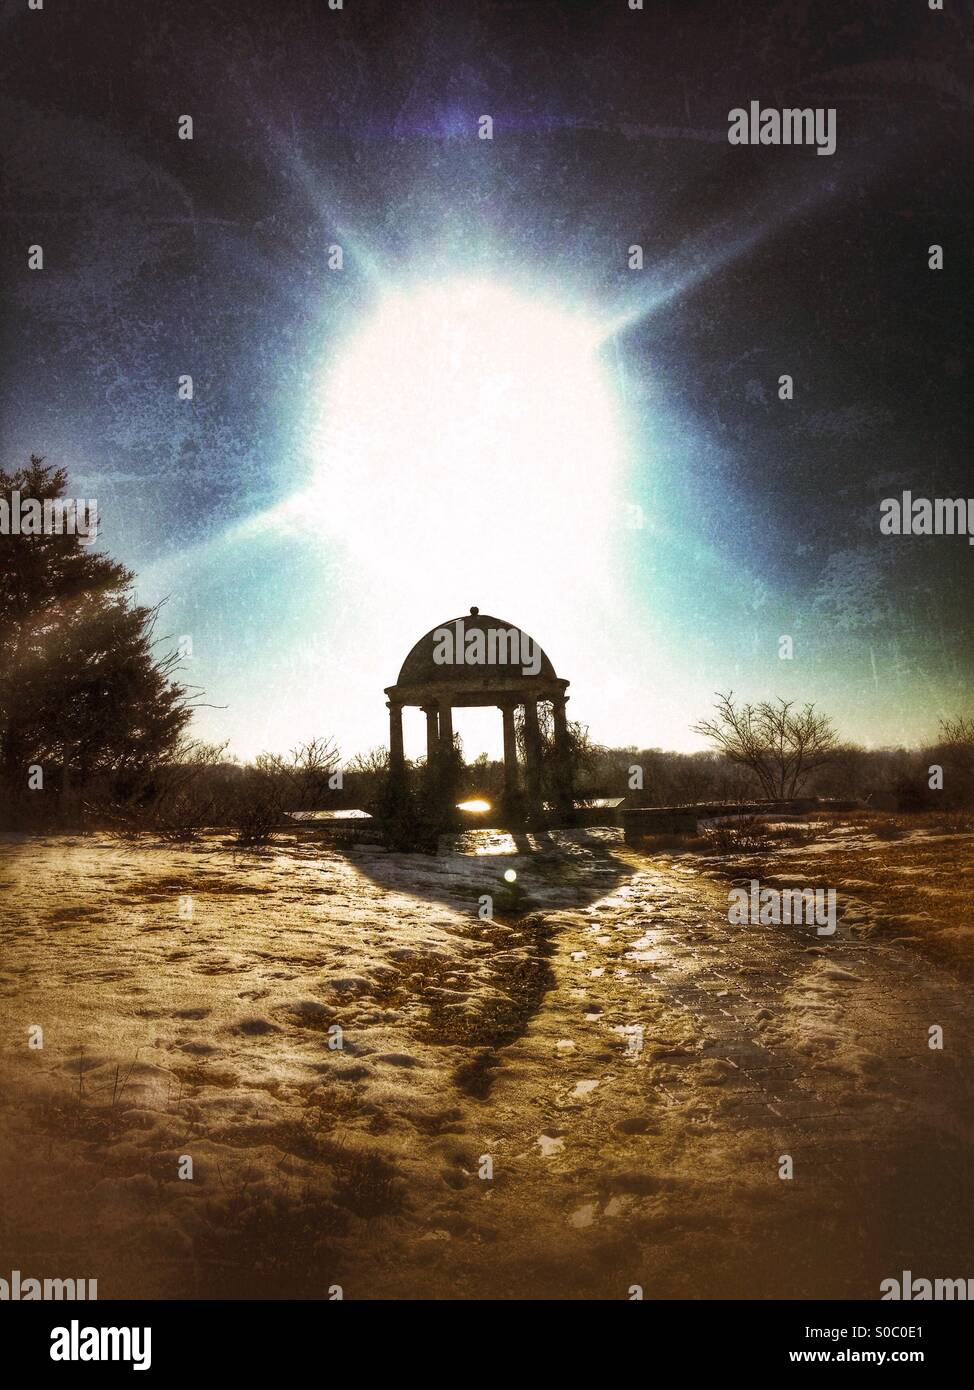 The sun beaming over a gazebo. - Stock Image